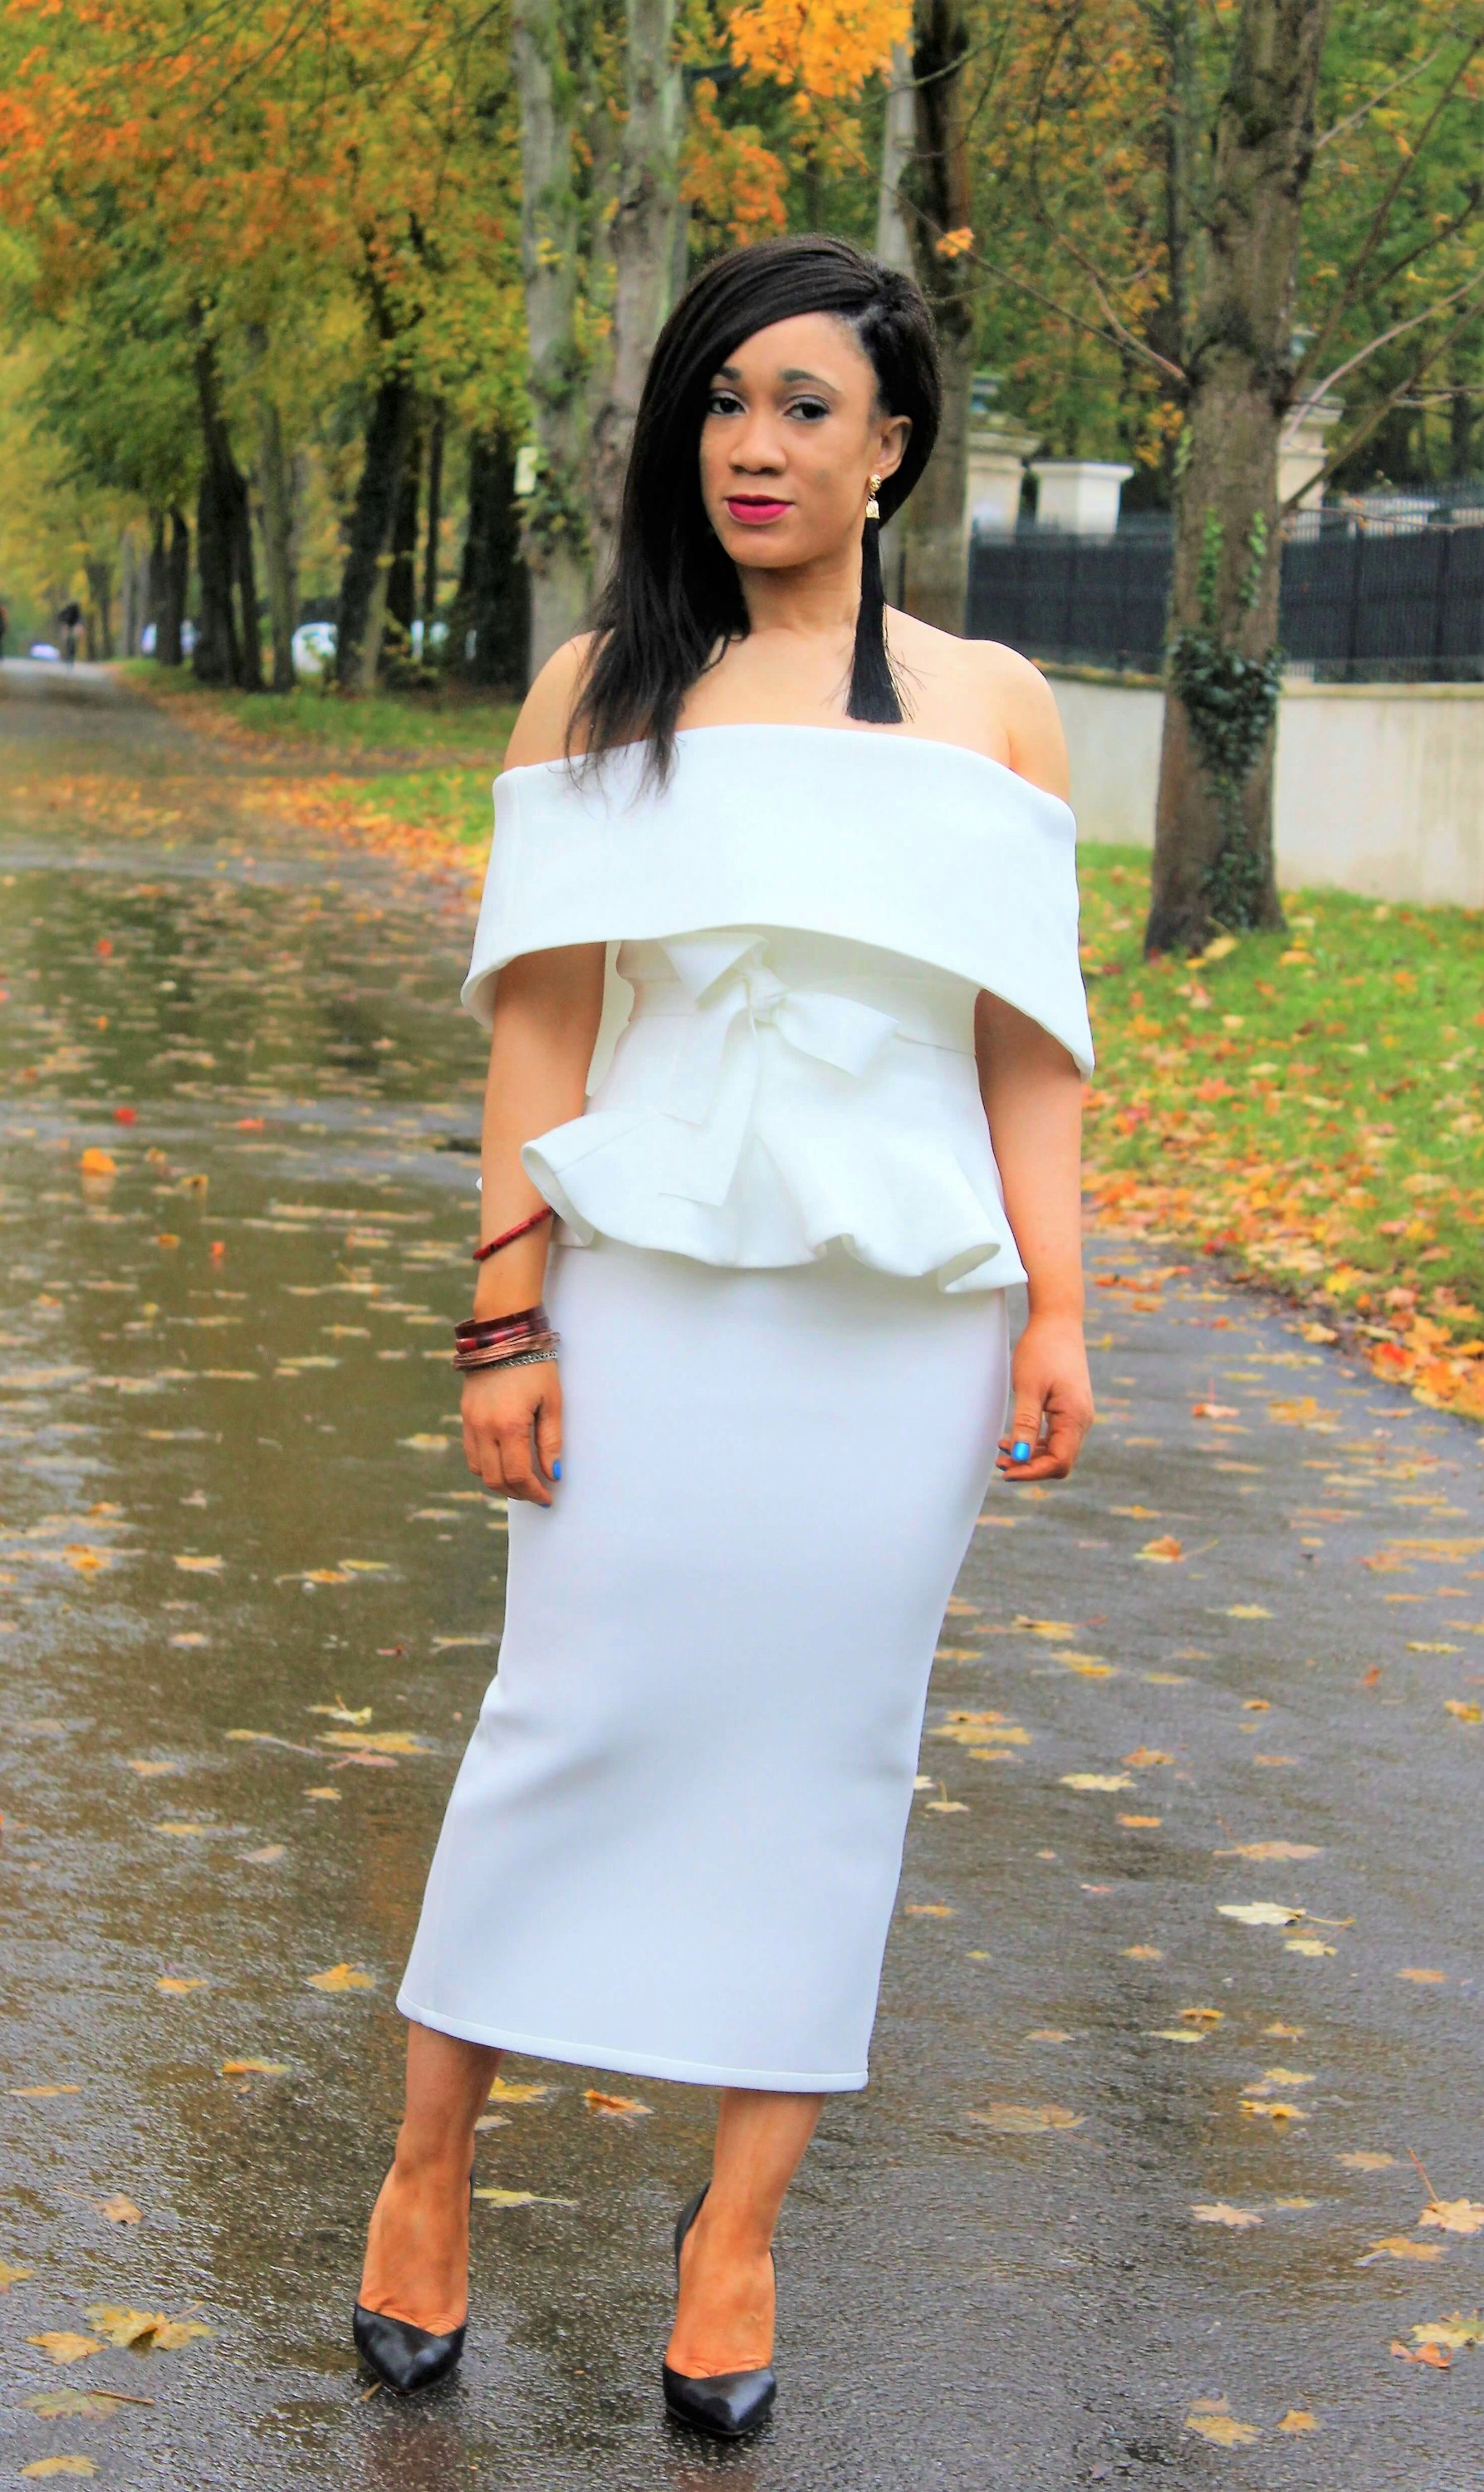 anna-fashion-therapy-ensemble-blanc-41-011113573865.jpeg